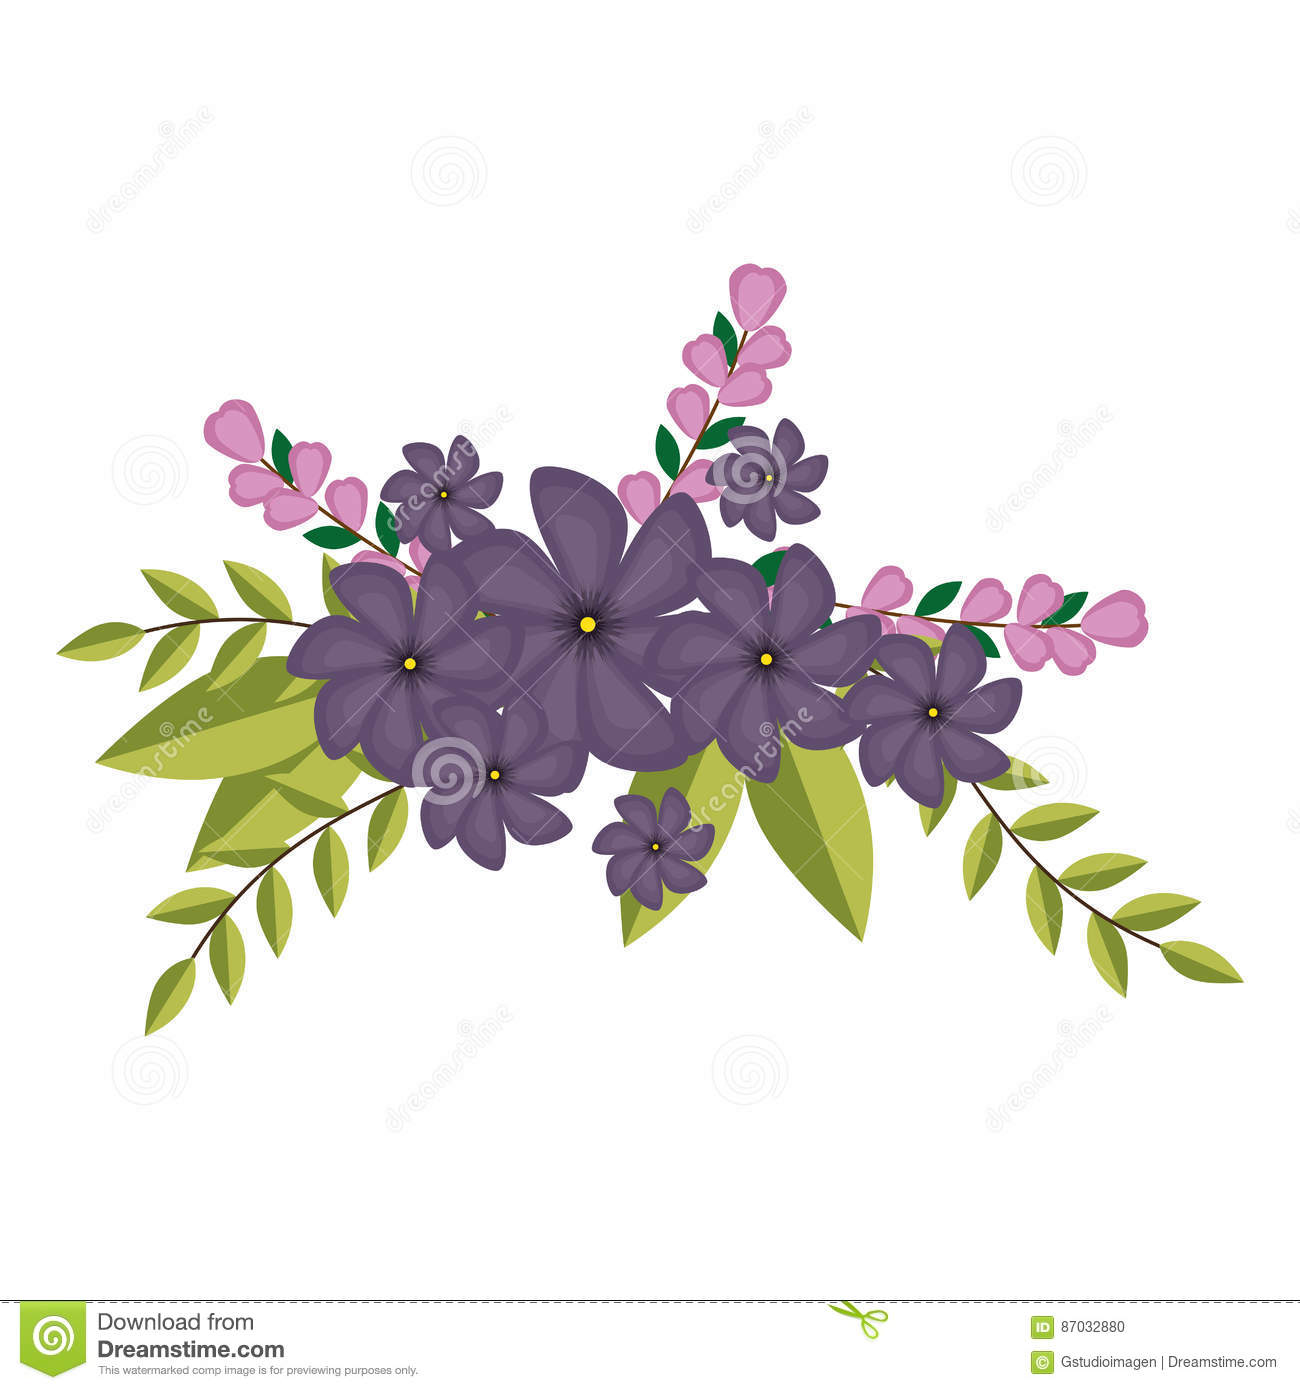 Violets flowers crown floral design with leaves stock vector violets flowers crown floral design with leaves izmirmasajfo